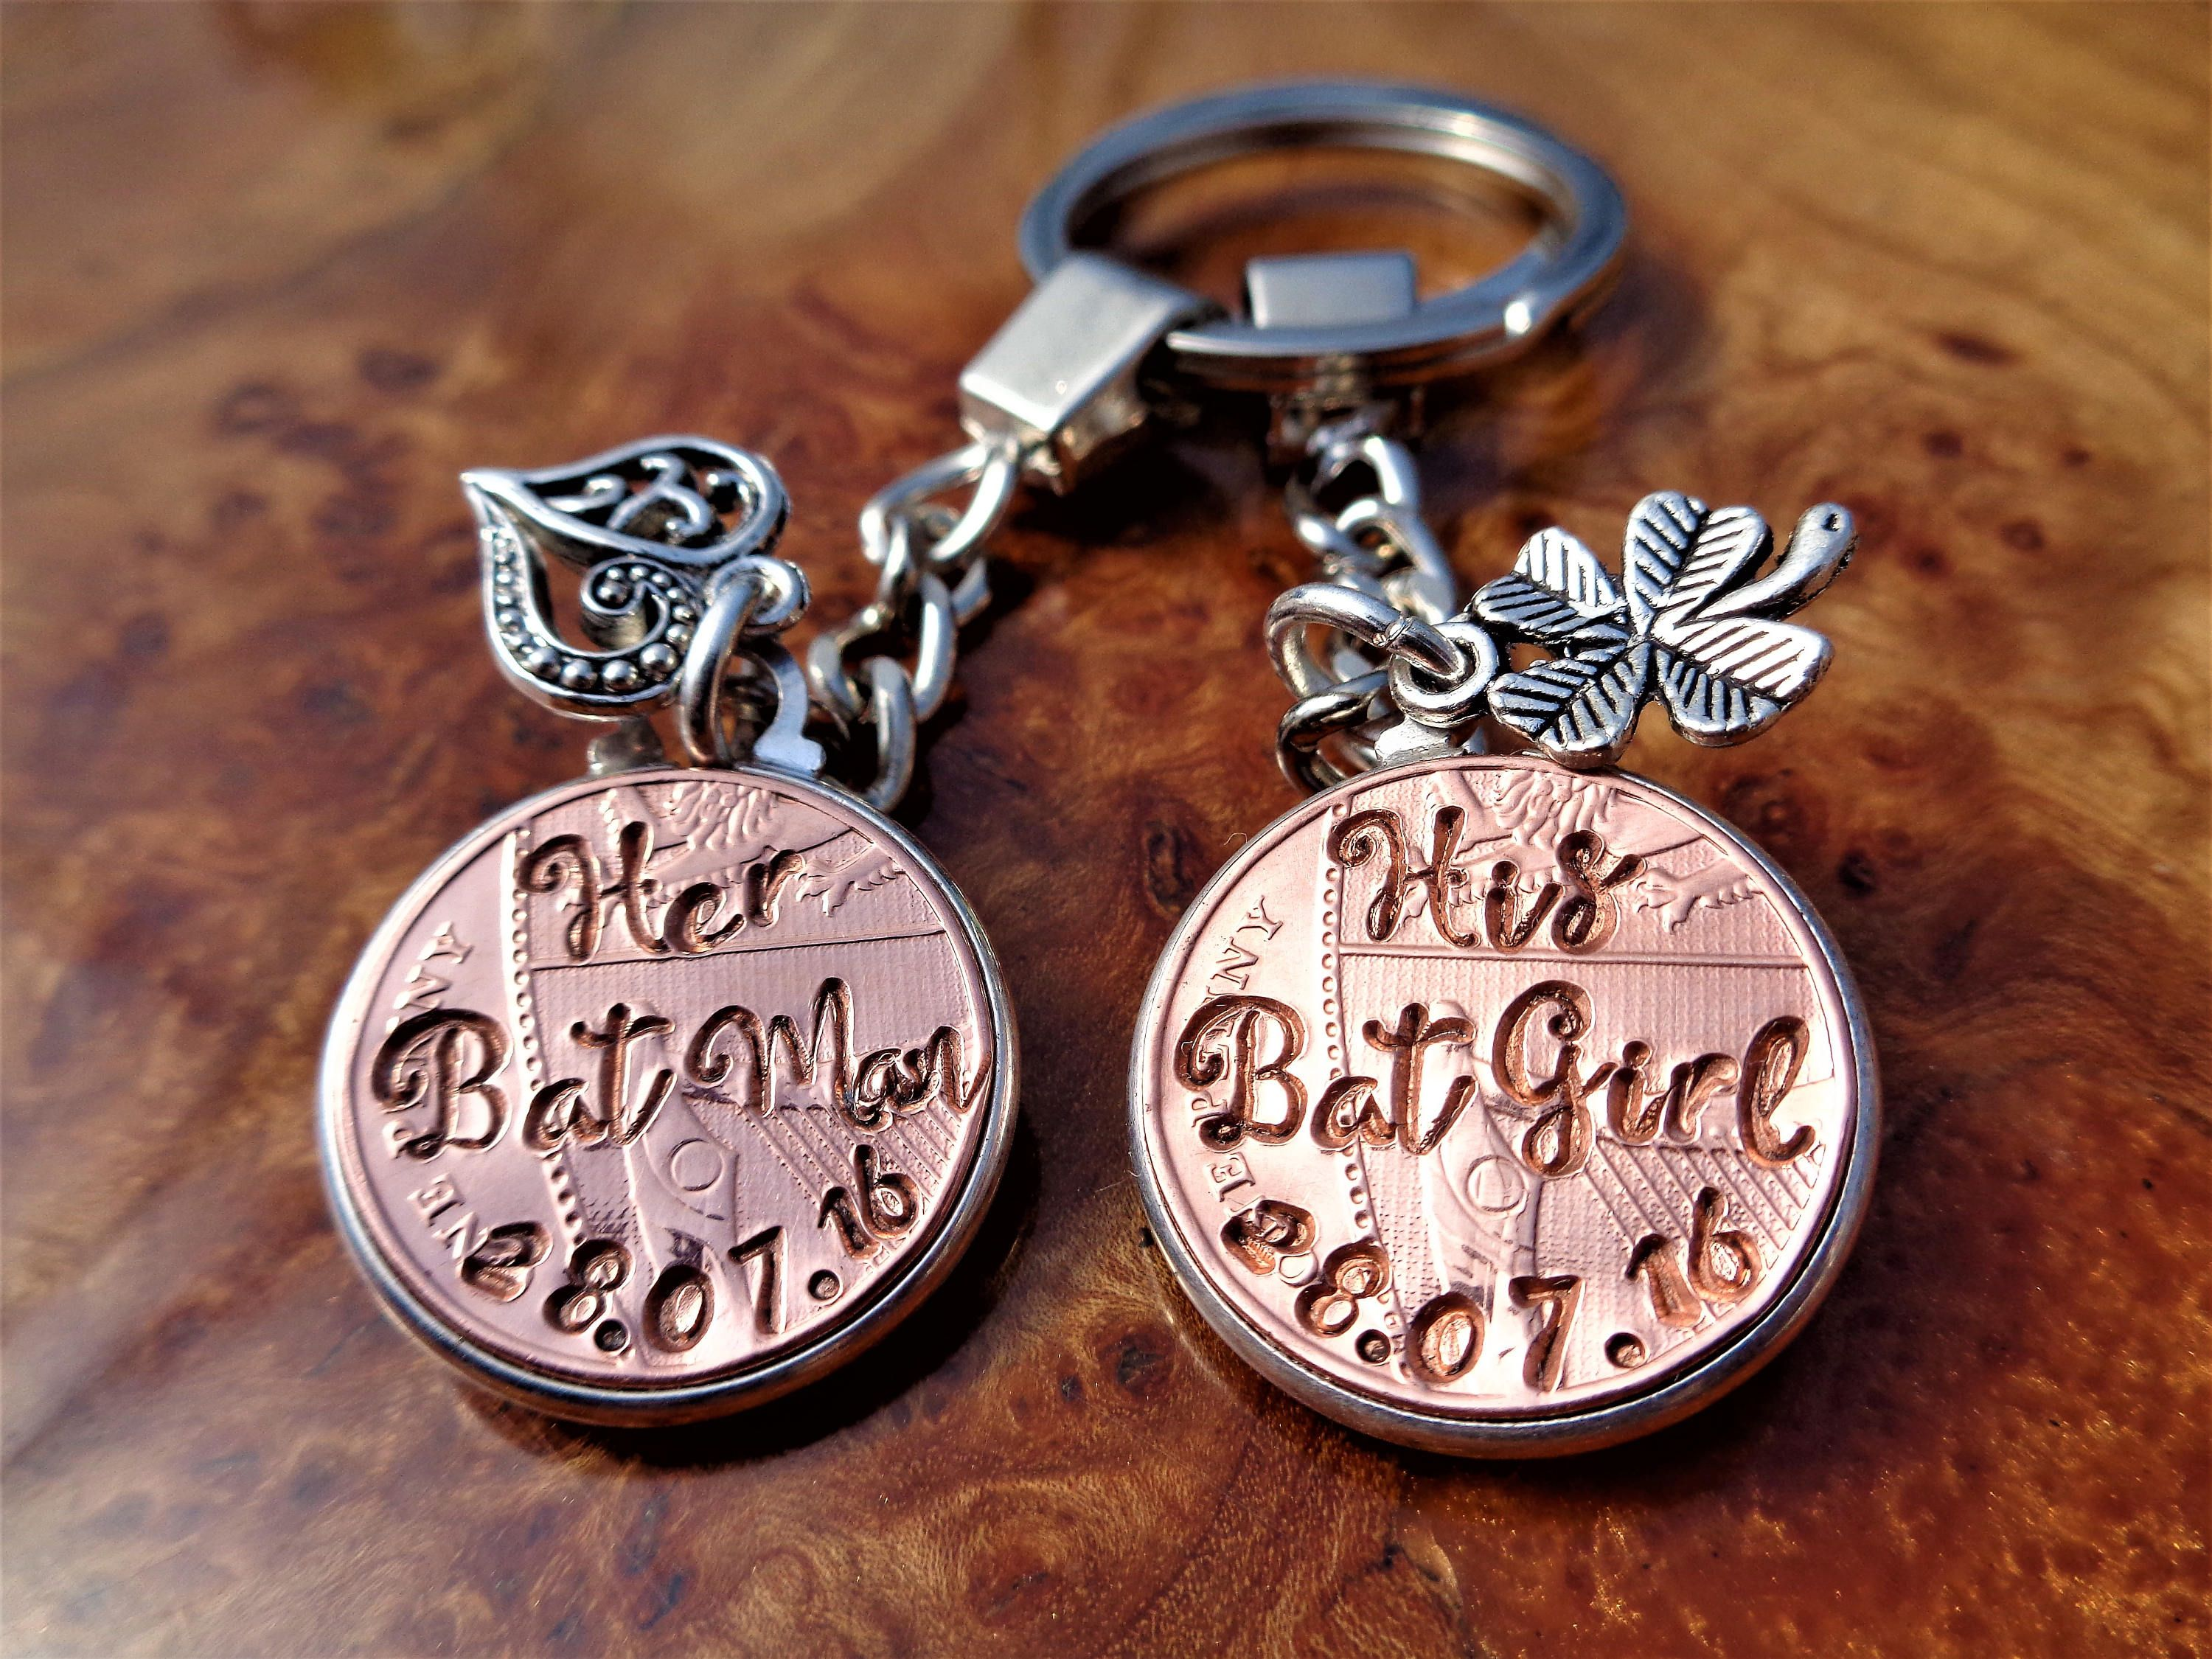 copper wedding anniversary gifts for her